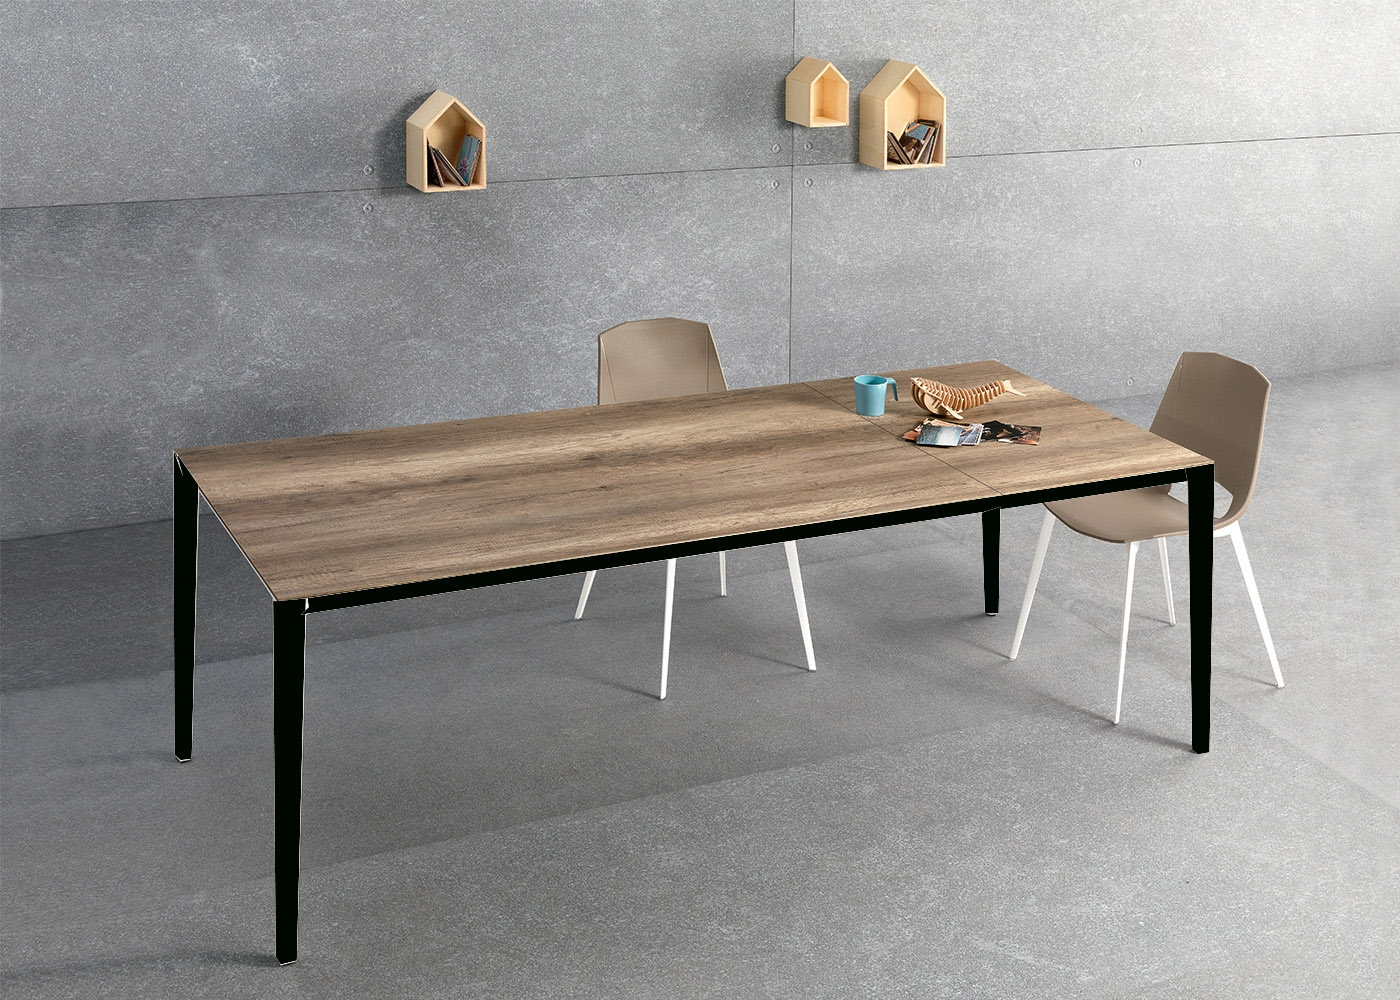 Table de repas en ch ne ou noyer au design sobre et for Table de salle a manger 240 cm